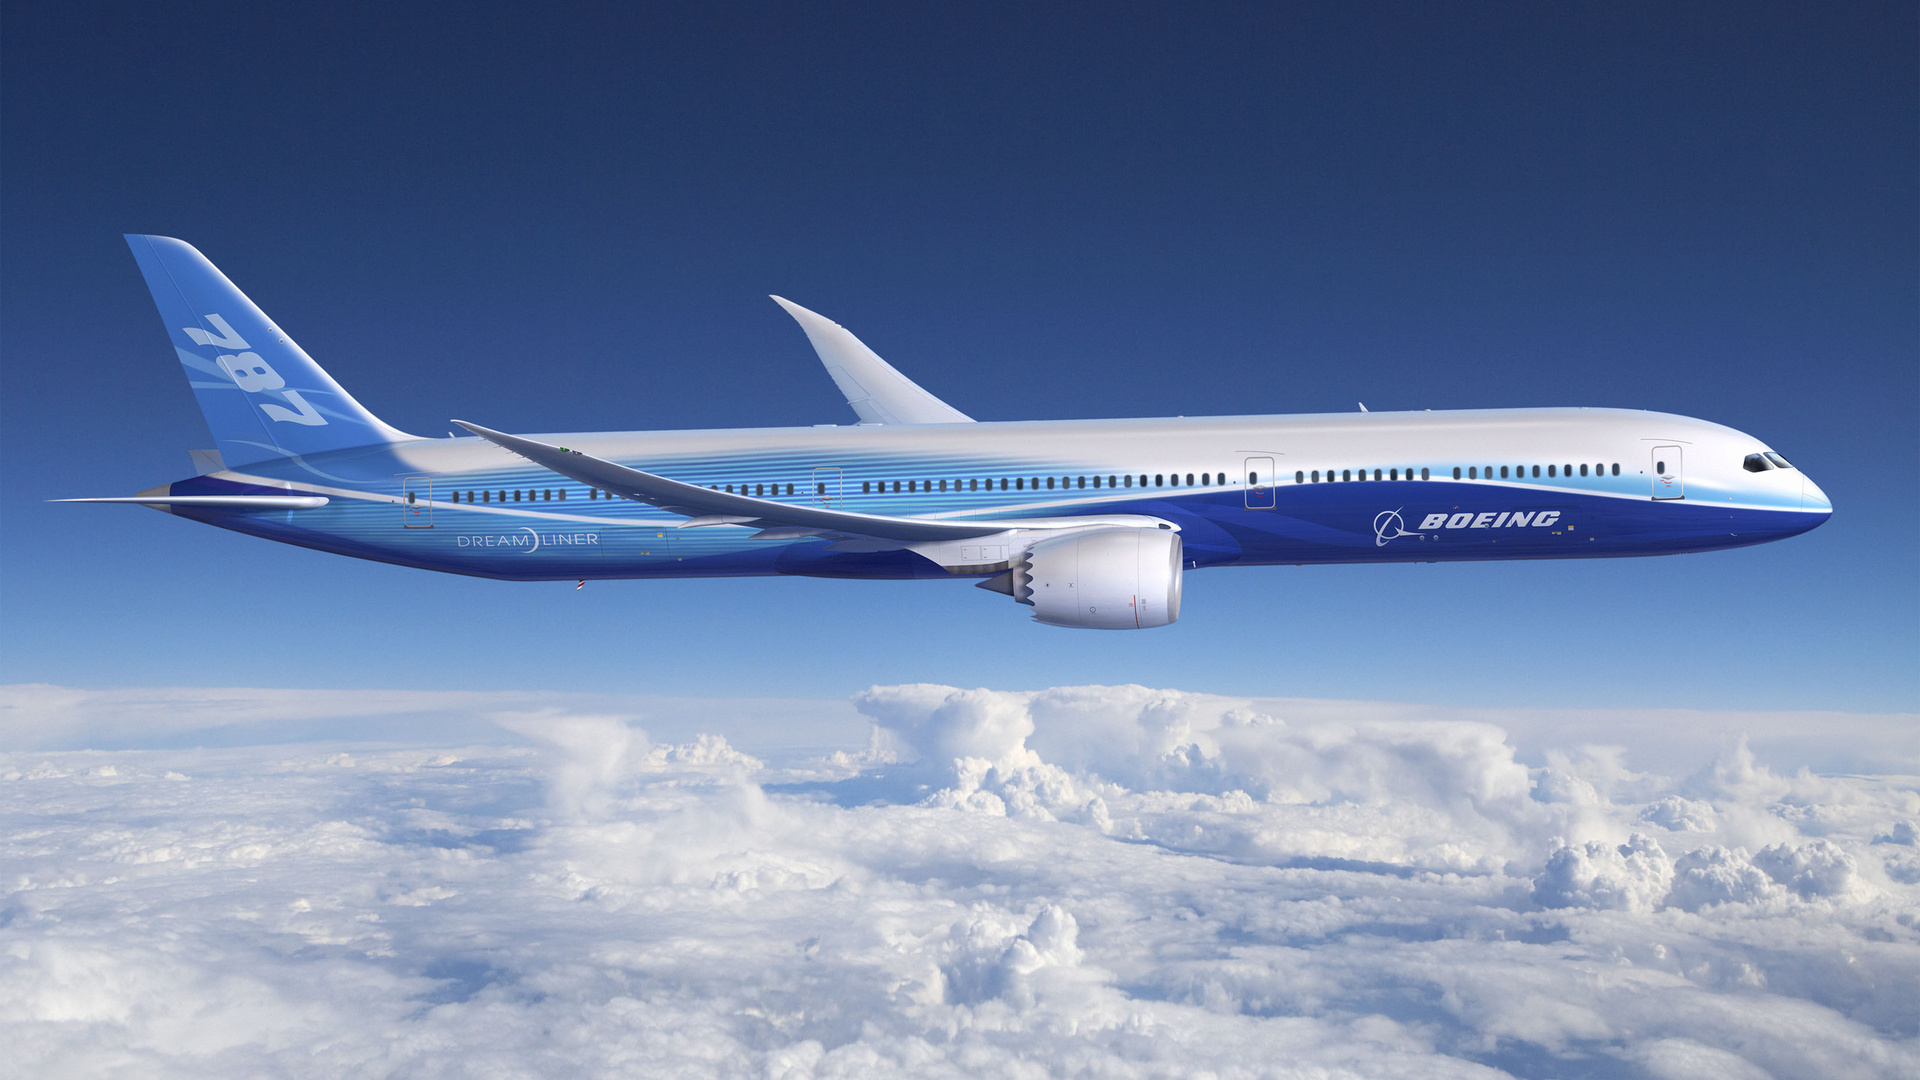 Airplane Passenger s Boeing-787 Aviation Wallpapers and photos